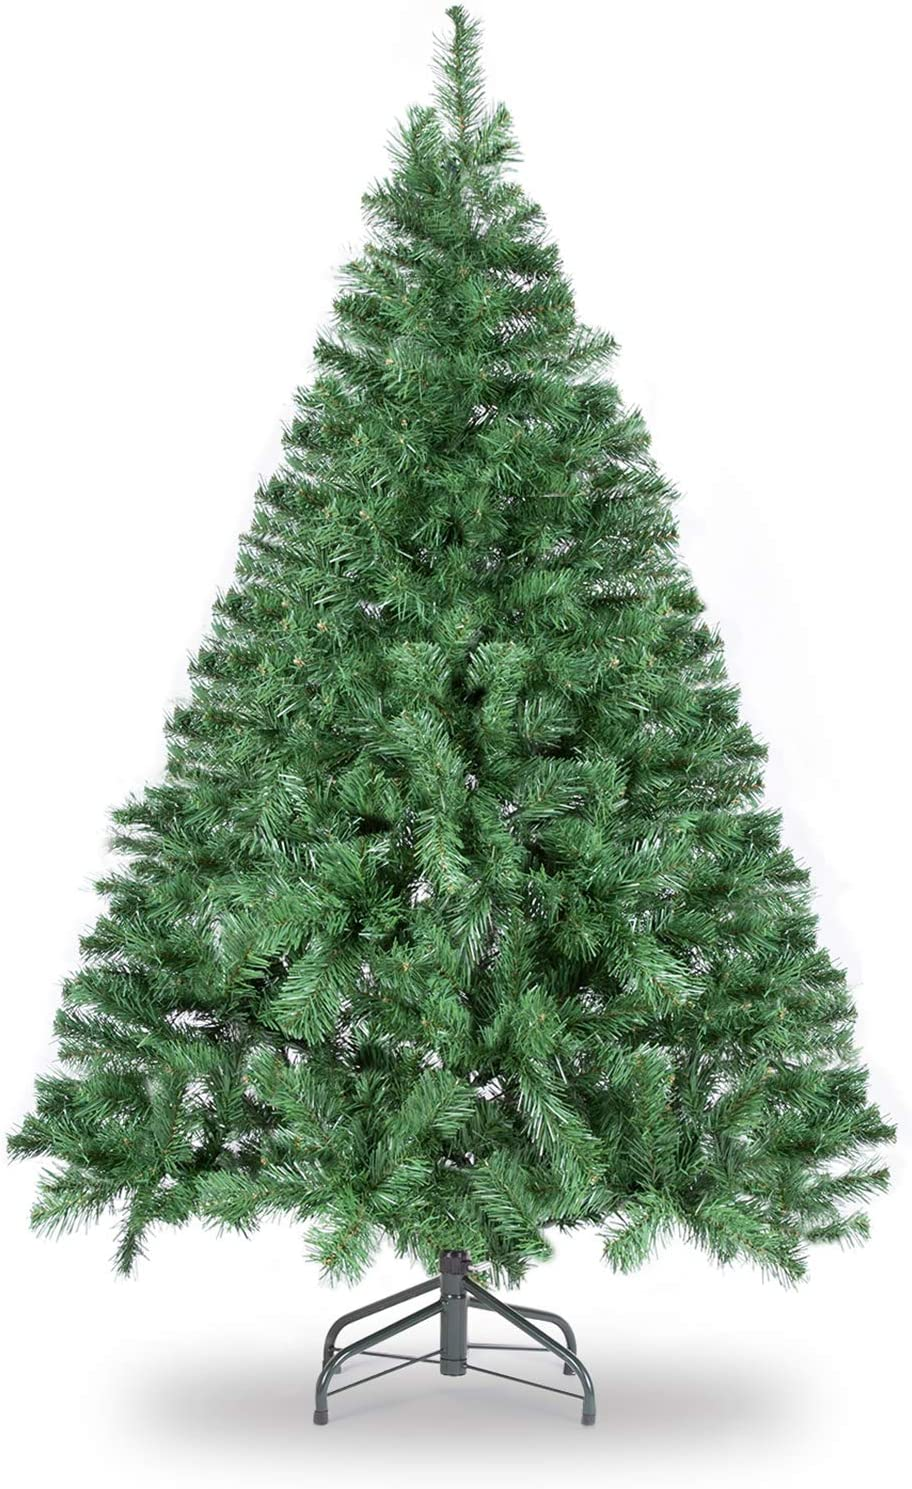 Amazon Com Wbhome 5 Feet Premium Spruce Hinged Artificial Christmas Tree 420 Branch Tips Unlit 5ft Kitchen Dining